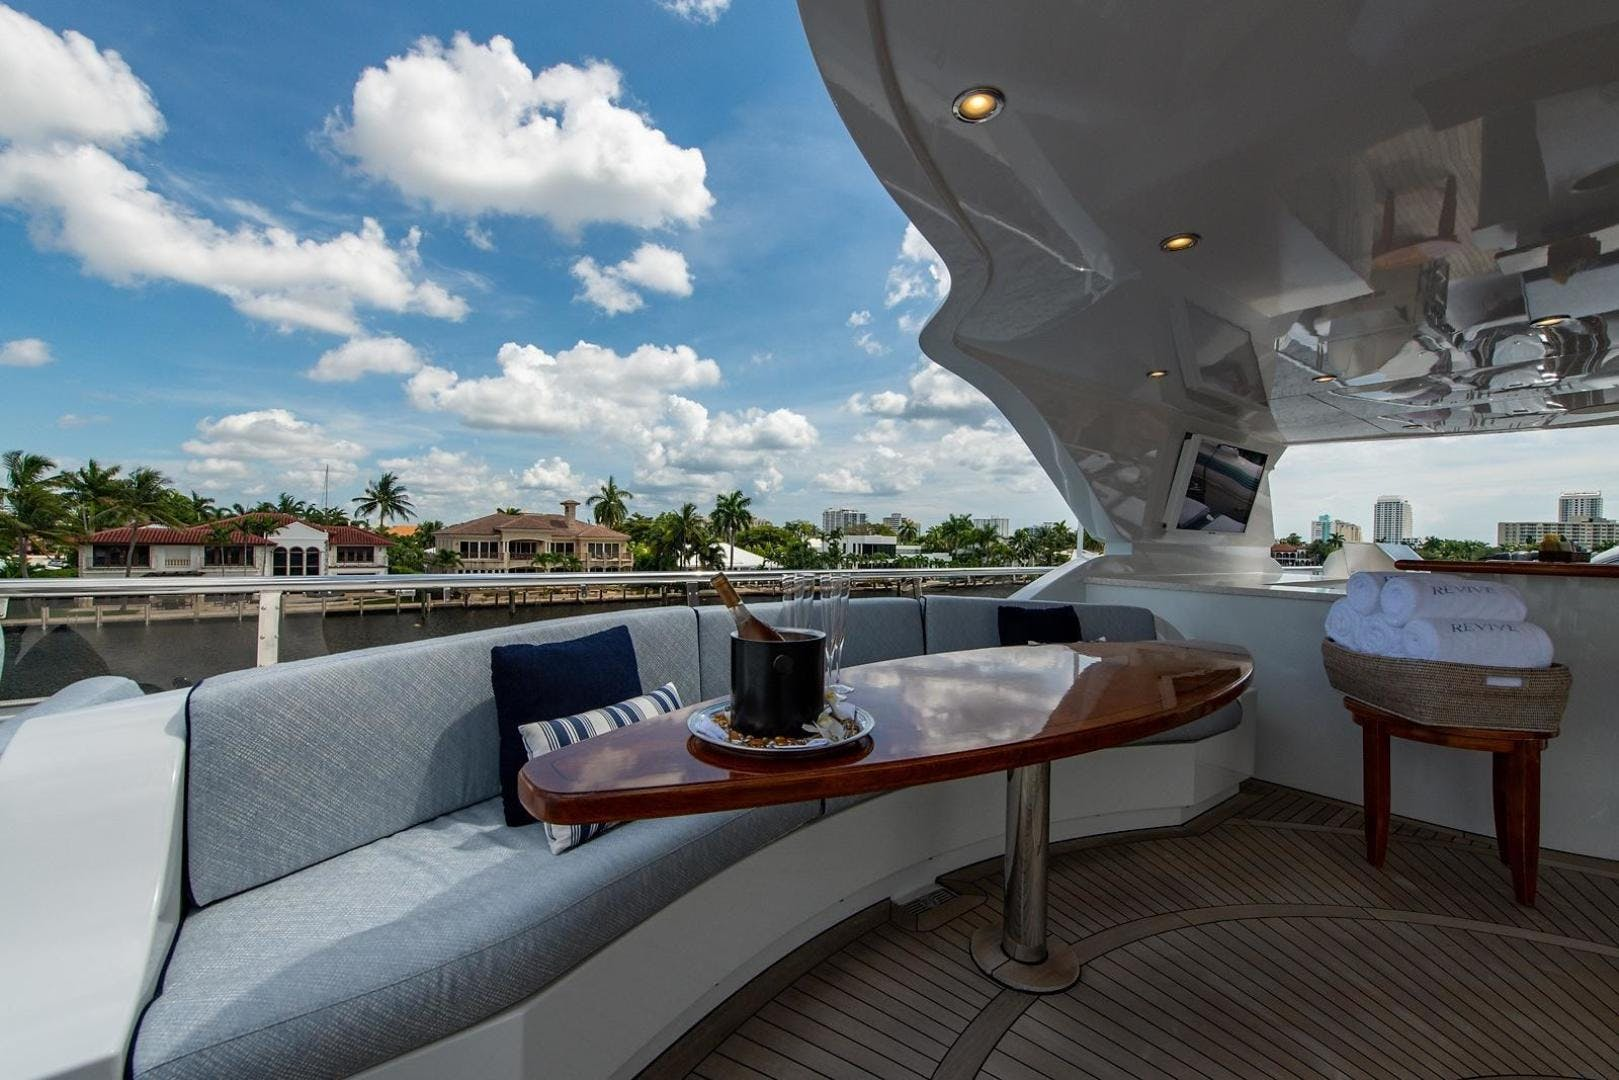 2013 Richmond Yachts 150' Tri-deck Motor Yacht Revive | Picture 7 of 164